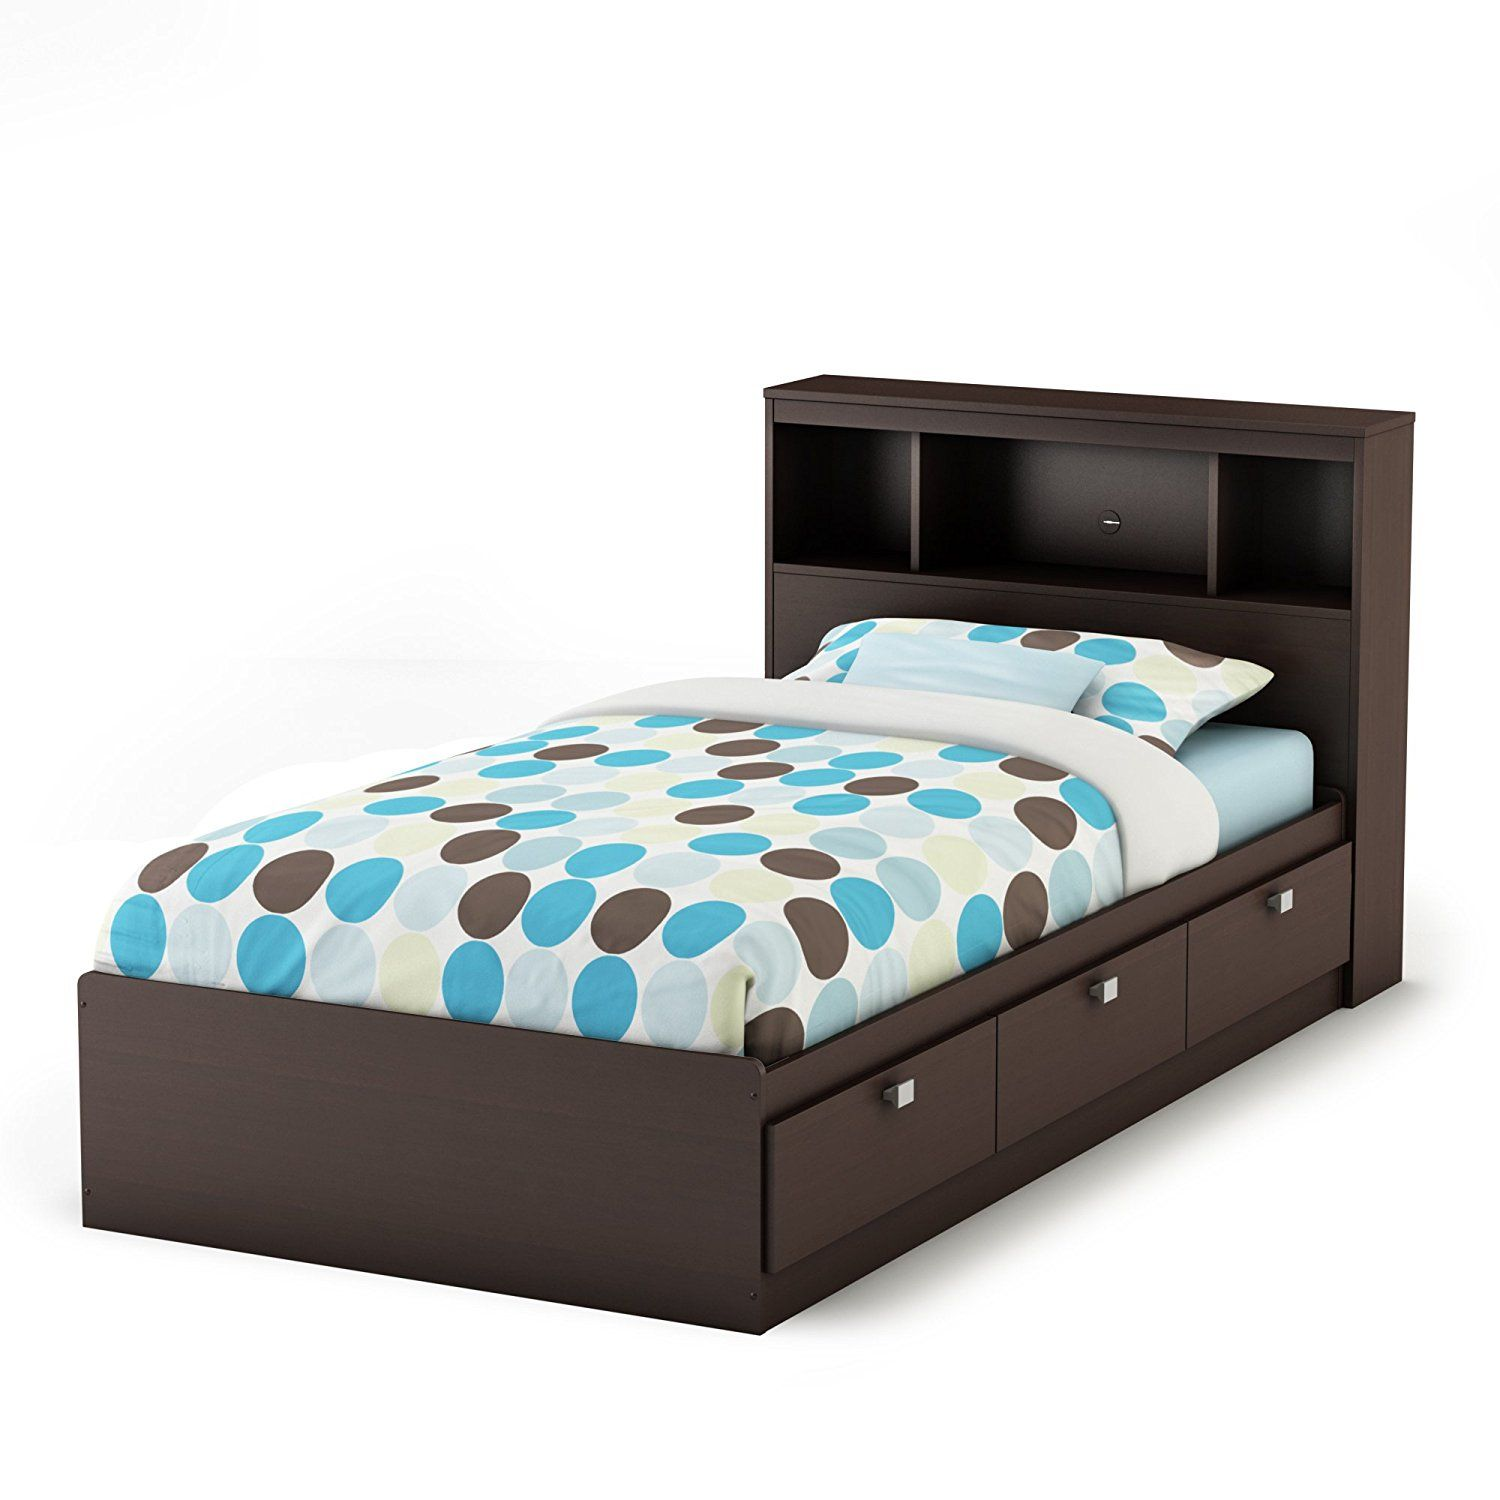 Beds Captain Twin Captains Bed With Bookcase Headboard Twin